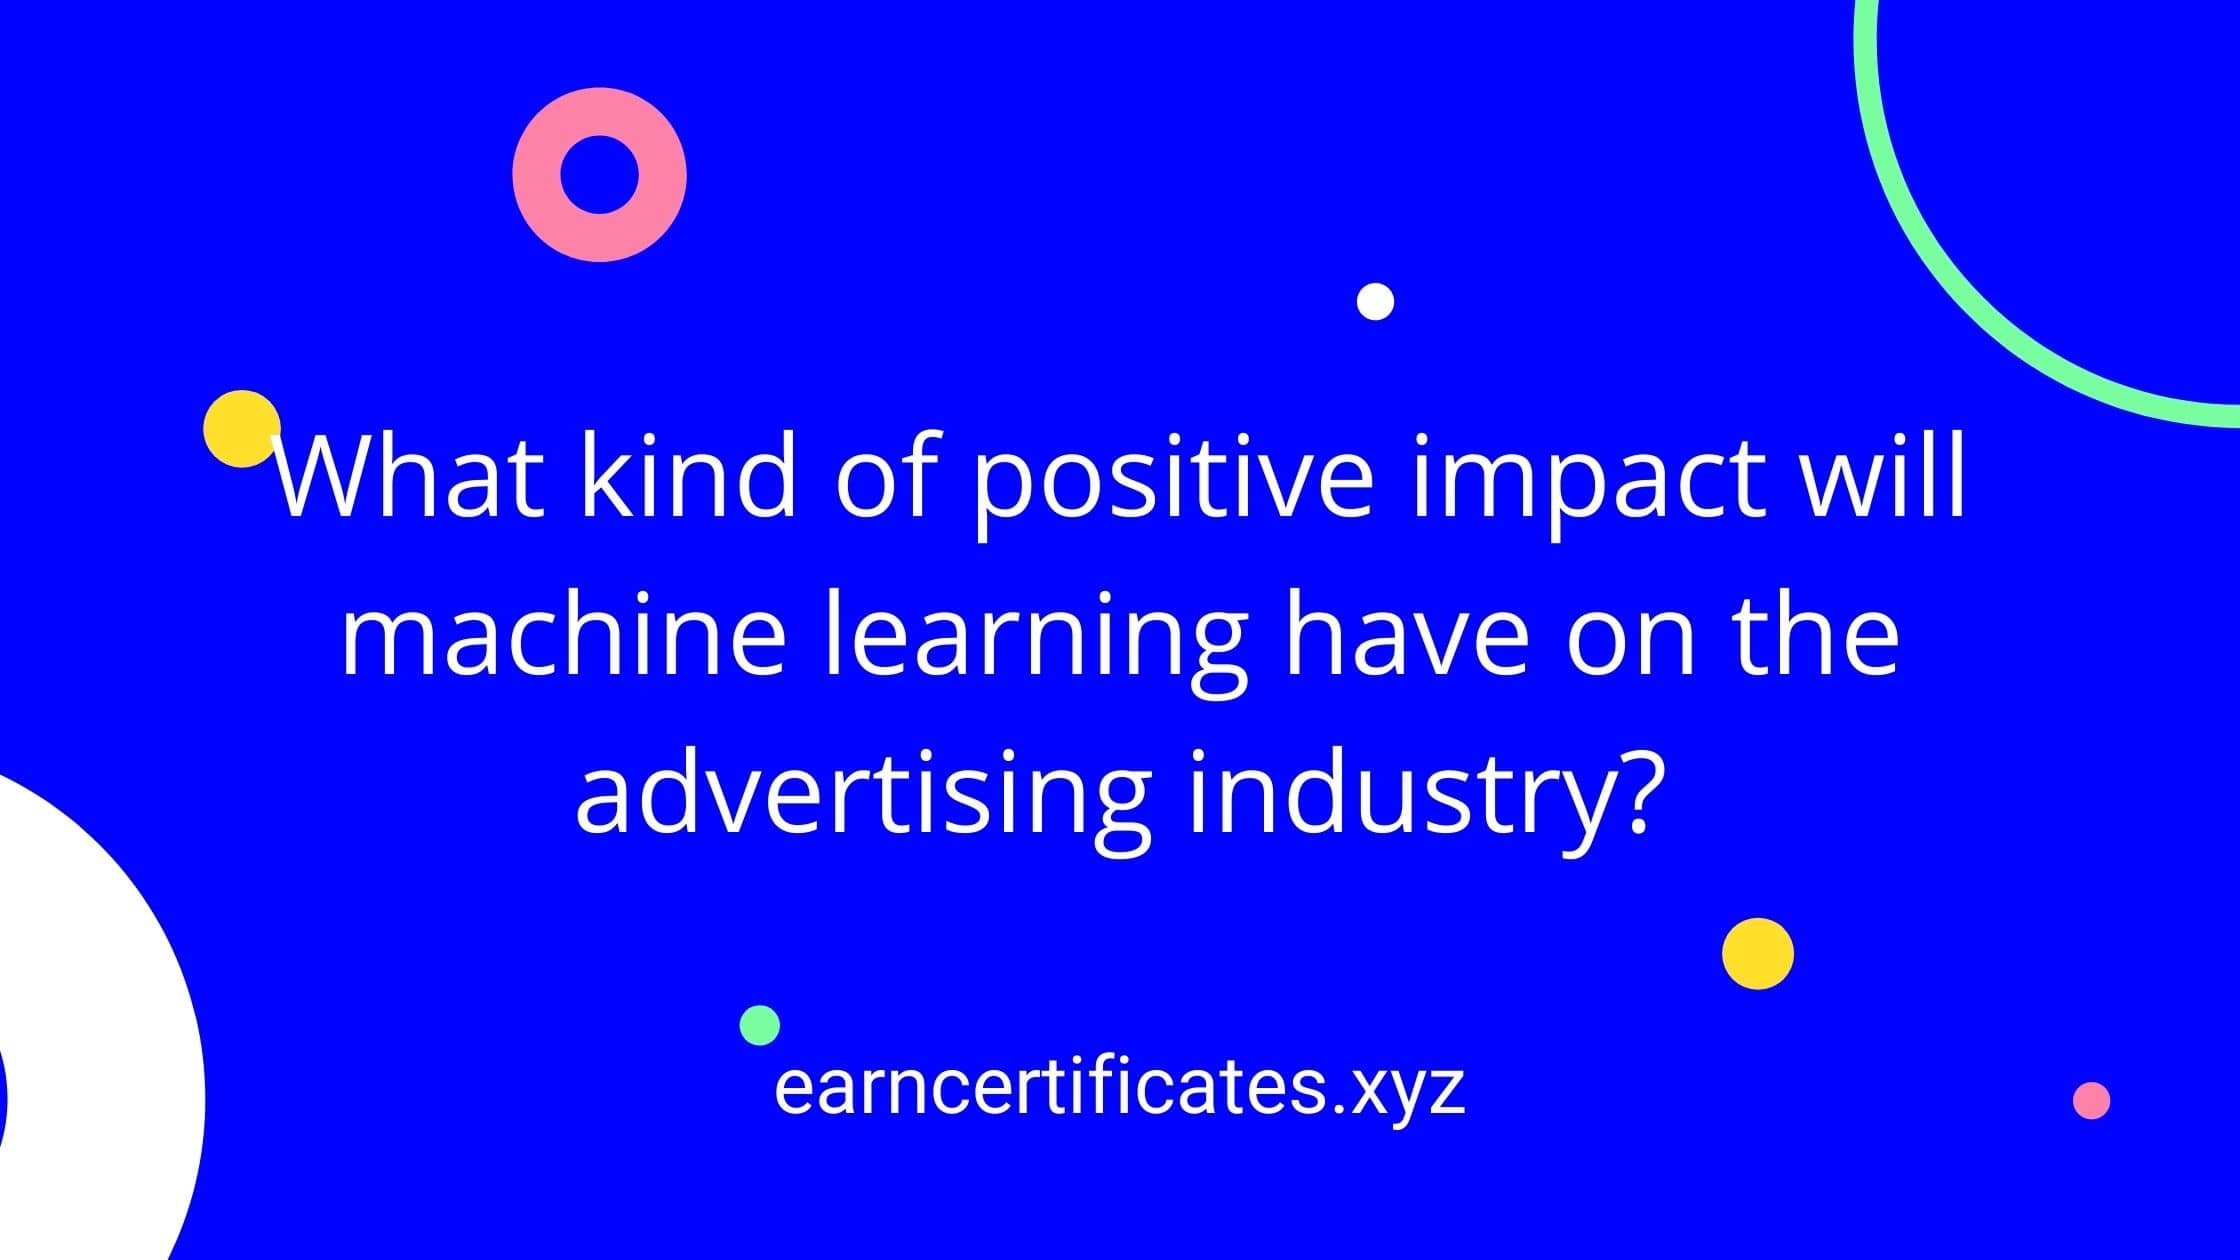 What kind of positive impact will machine learning have on the advertising industry?